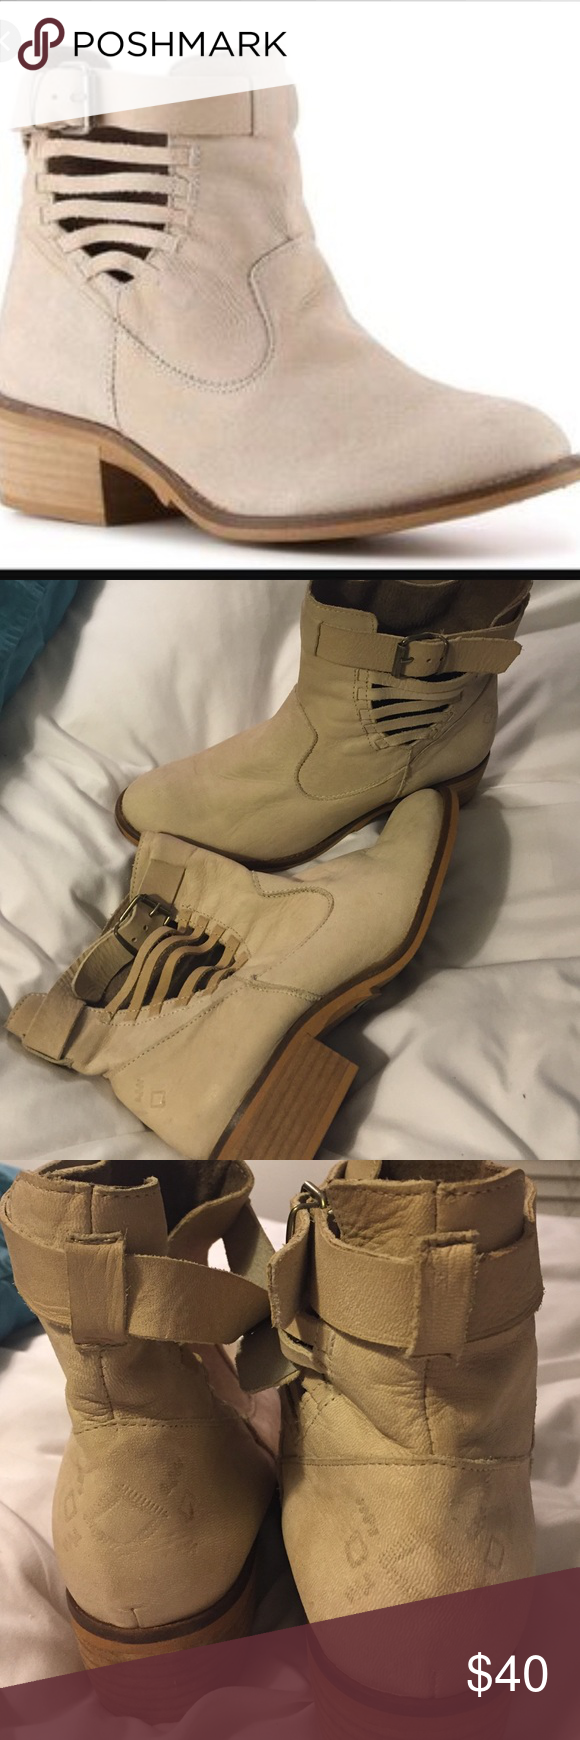 Ankle boots BEAUTIFUL Boots! So sad to let them go but they're too small for me! Near perfect condition and they appear to be genuine leather! Made in Spain and its clear they are very well made! They go with EVERYTHING! Perfect for fall! Taupe color Coolway Shoes Ankle Boots & Booties